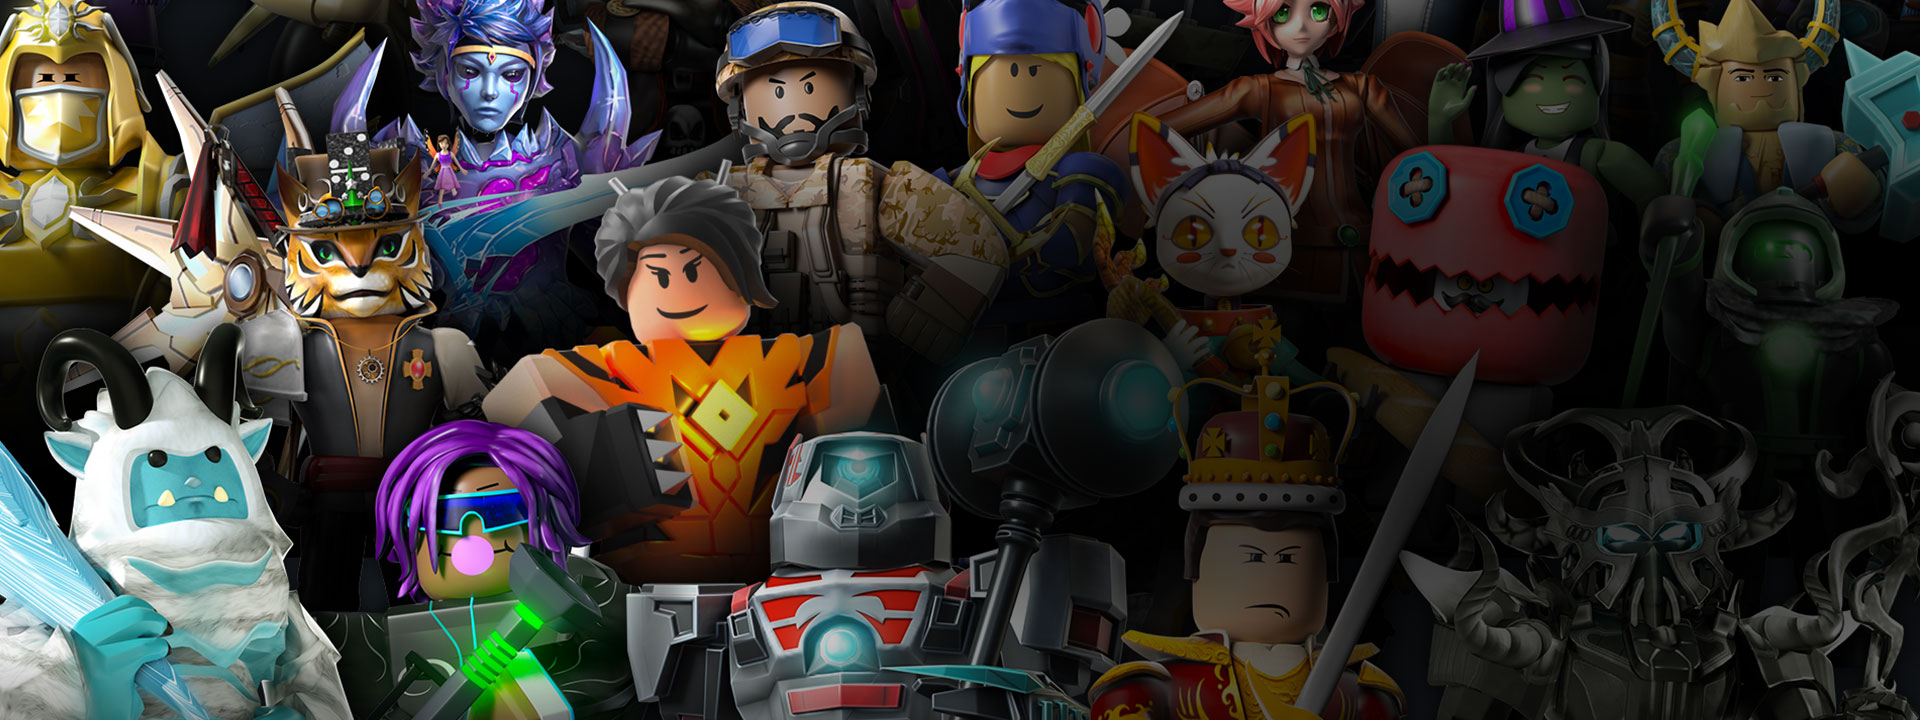 Characters from Roblox lined up posing